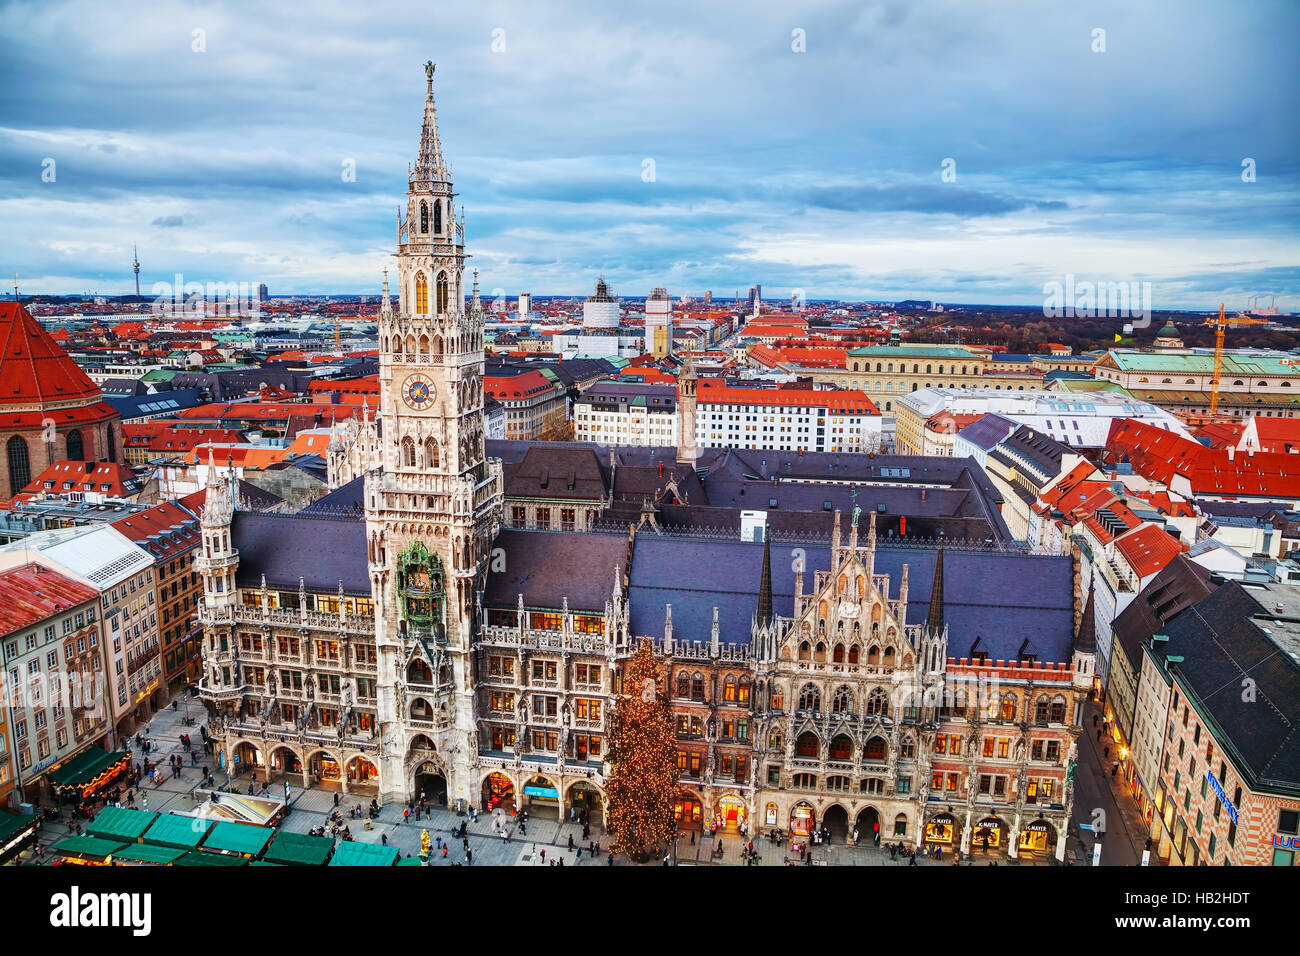 Aerial view of Marienplatz in Munich Stock Photo